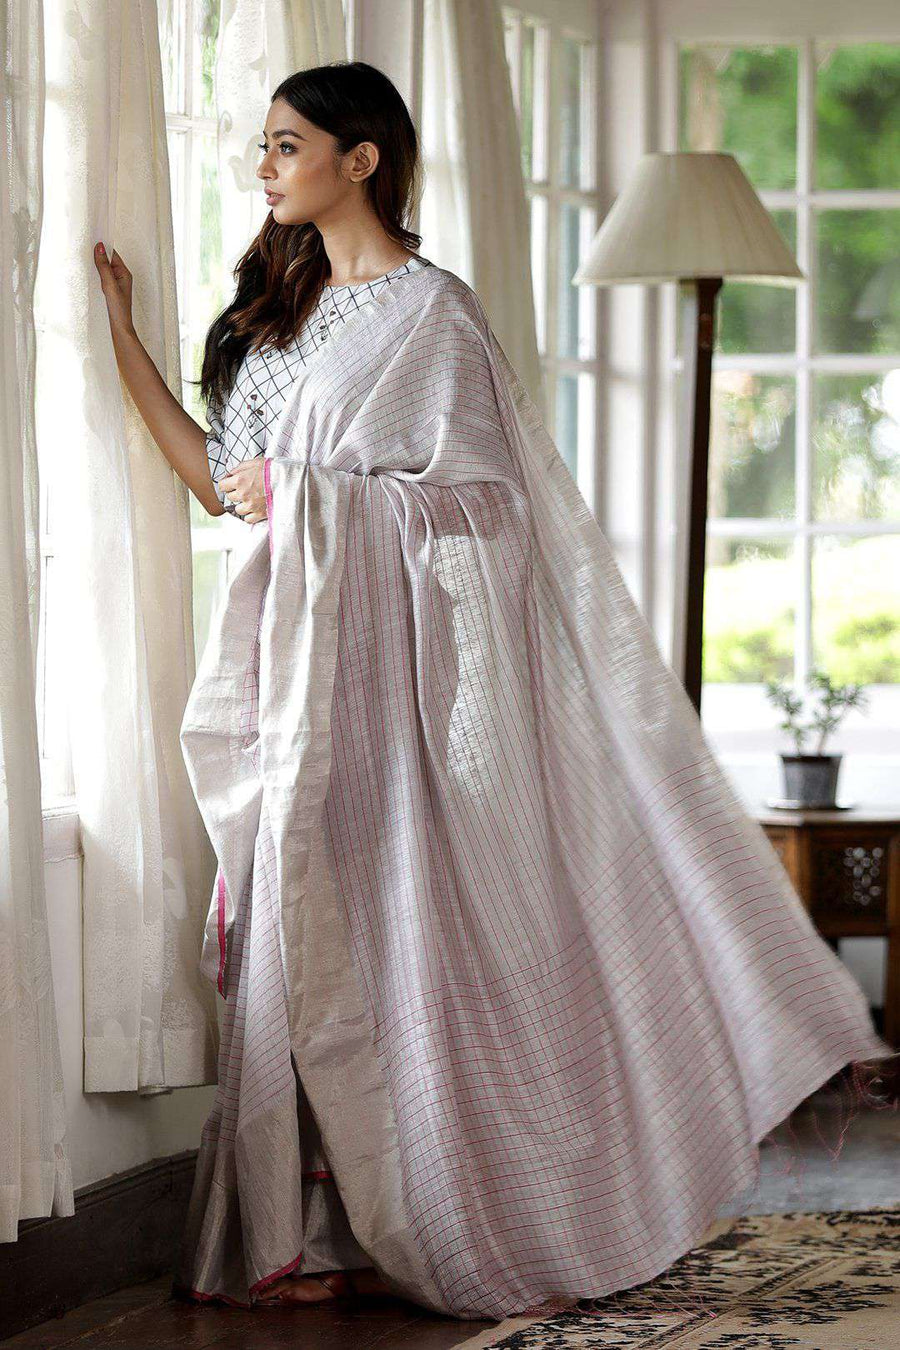 White Matka Silk Saree With Check Design Kriti Classics Roopkatha - A Story of Art